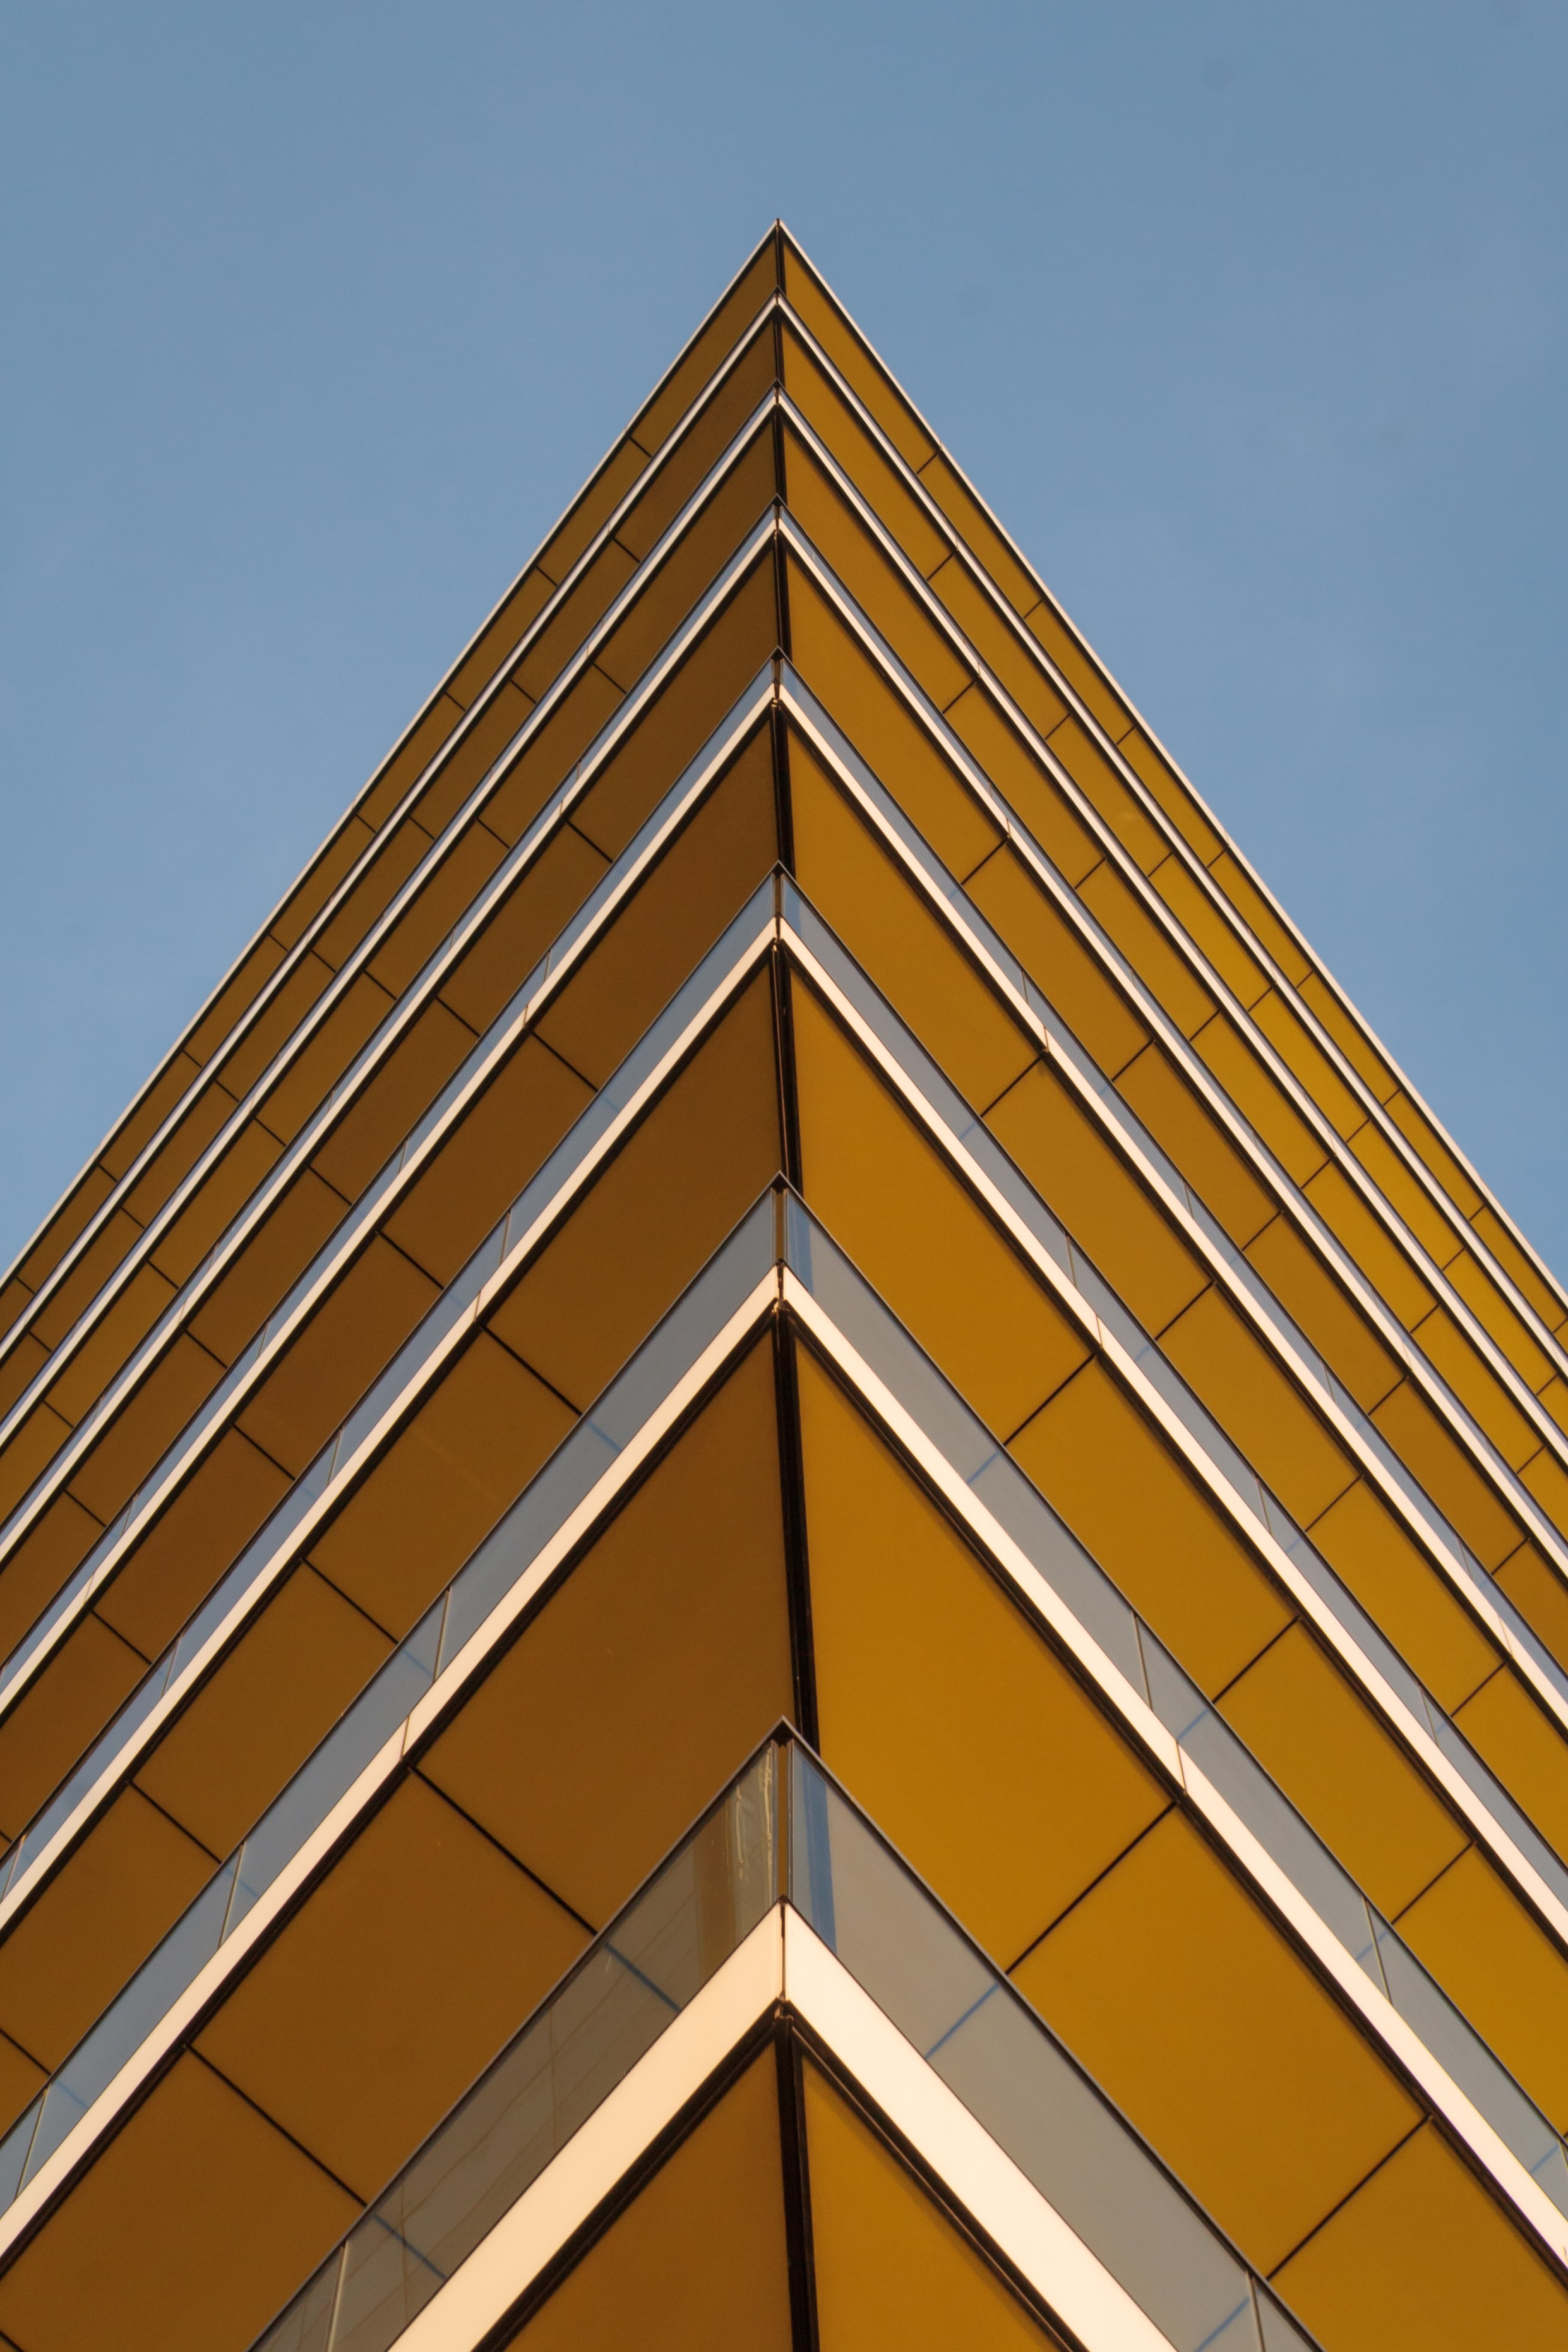 worm's-eye view photography of yellow building